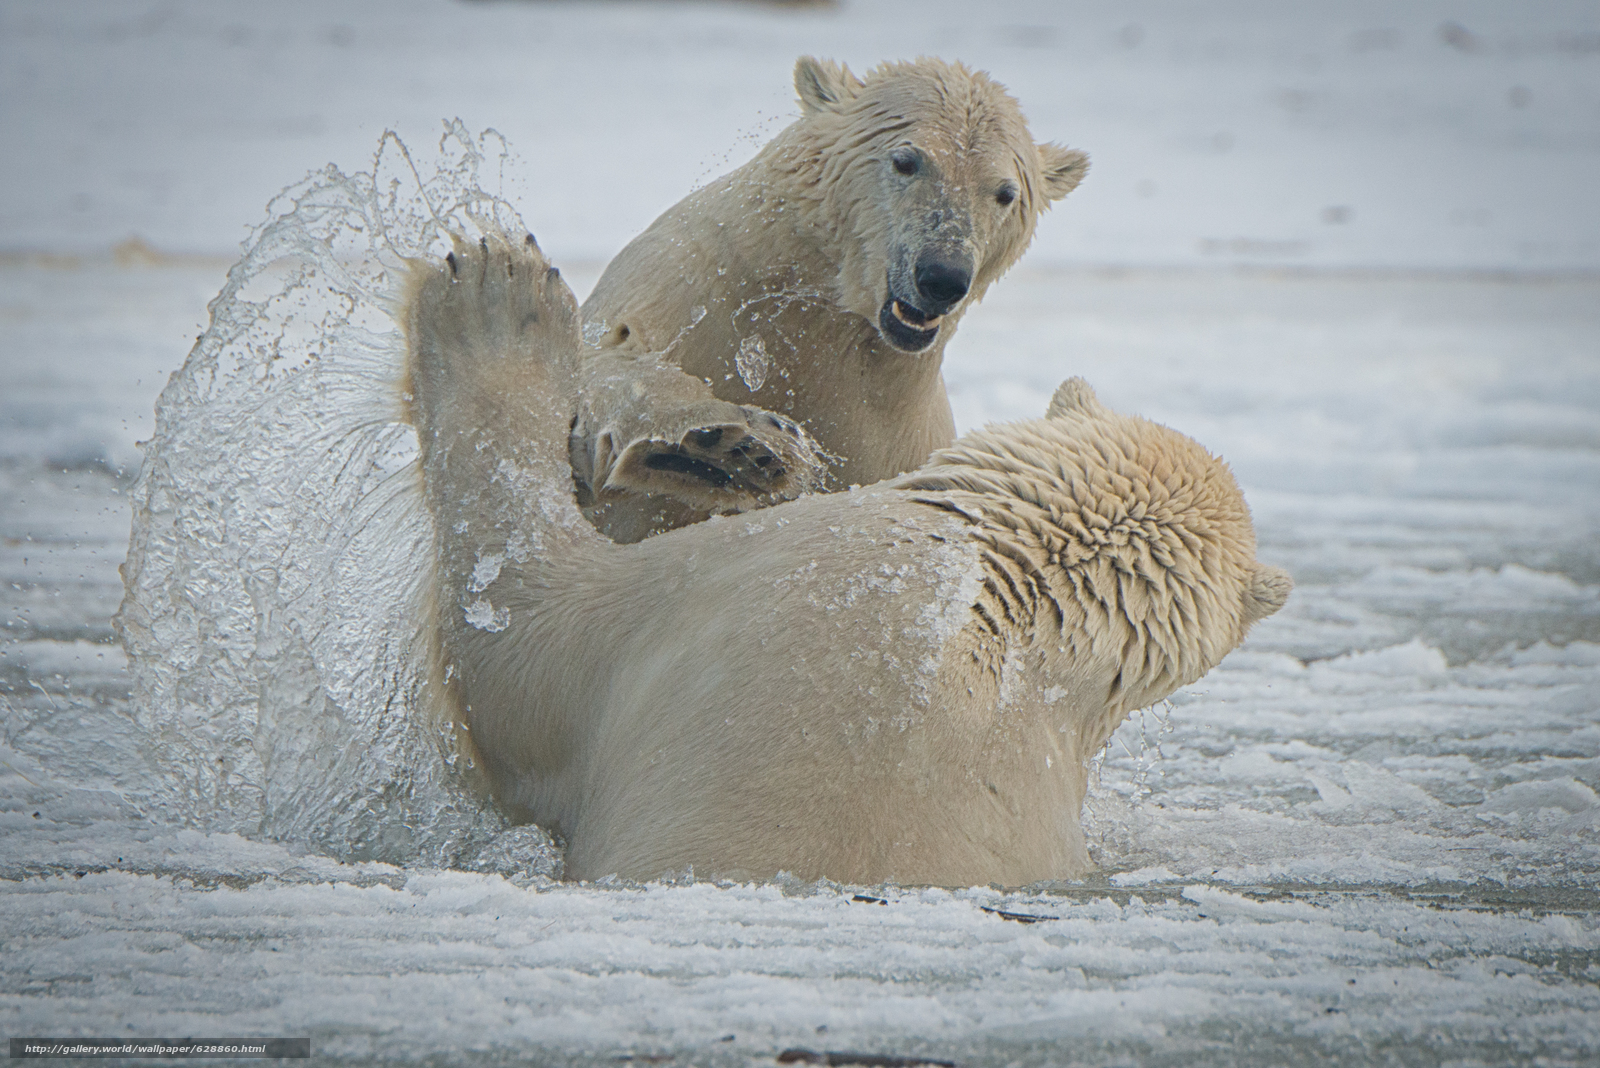 O Parque Nacional ?rtico, Alasca, Os ursos polares, Arctic National Wildlife Refuge, Bears, treino, spray